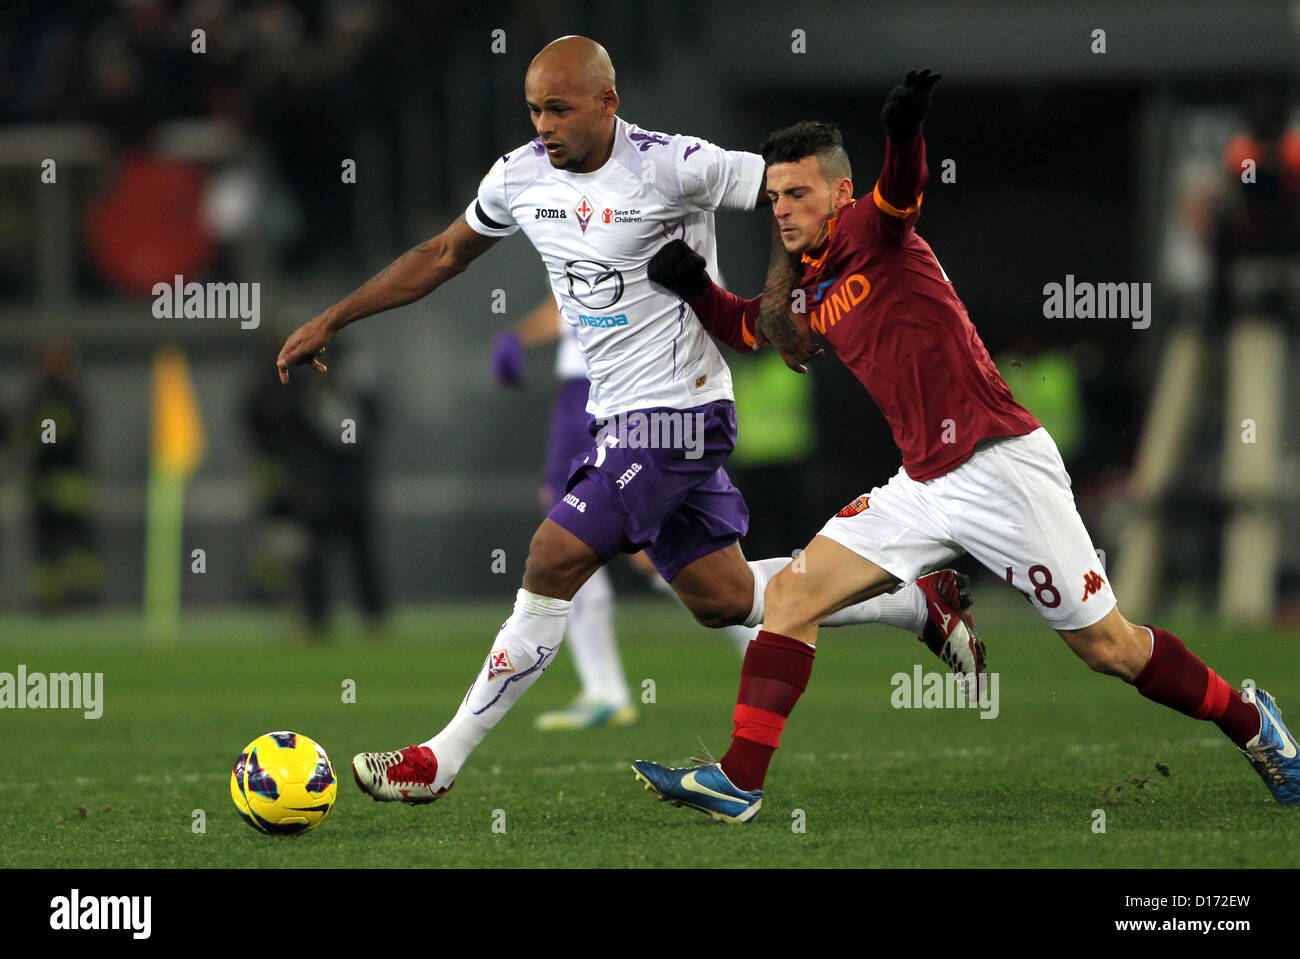 09.12.2012 Rome, Italy. Florenzi and Ruben Olivera during the Italia League game between Roma and Fiorentina from - Stock Image